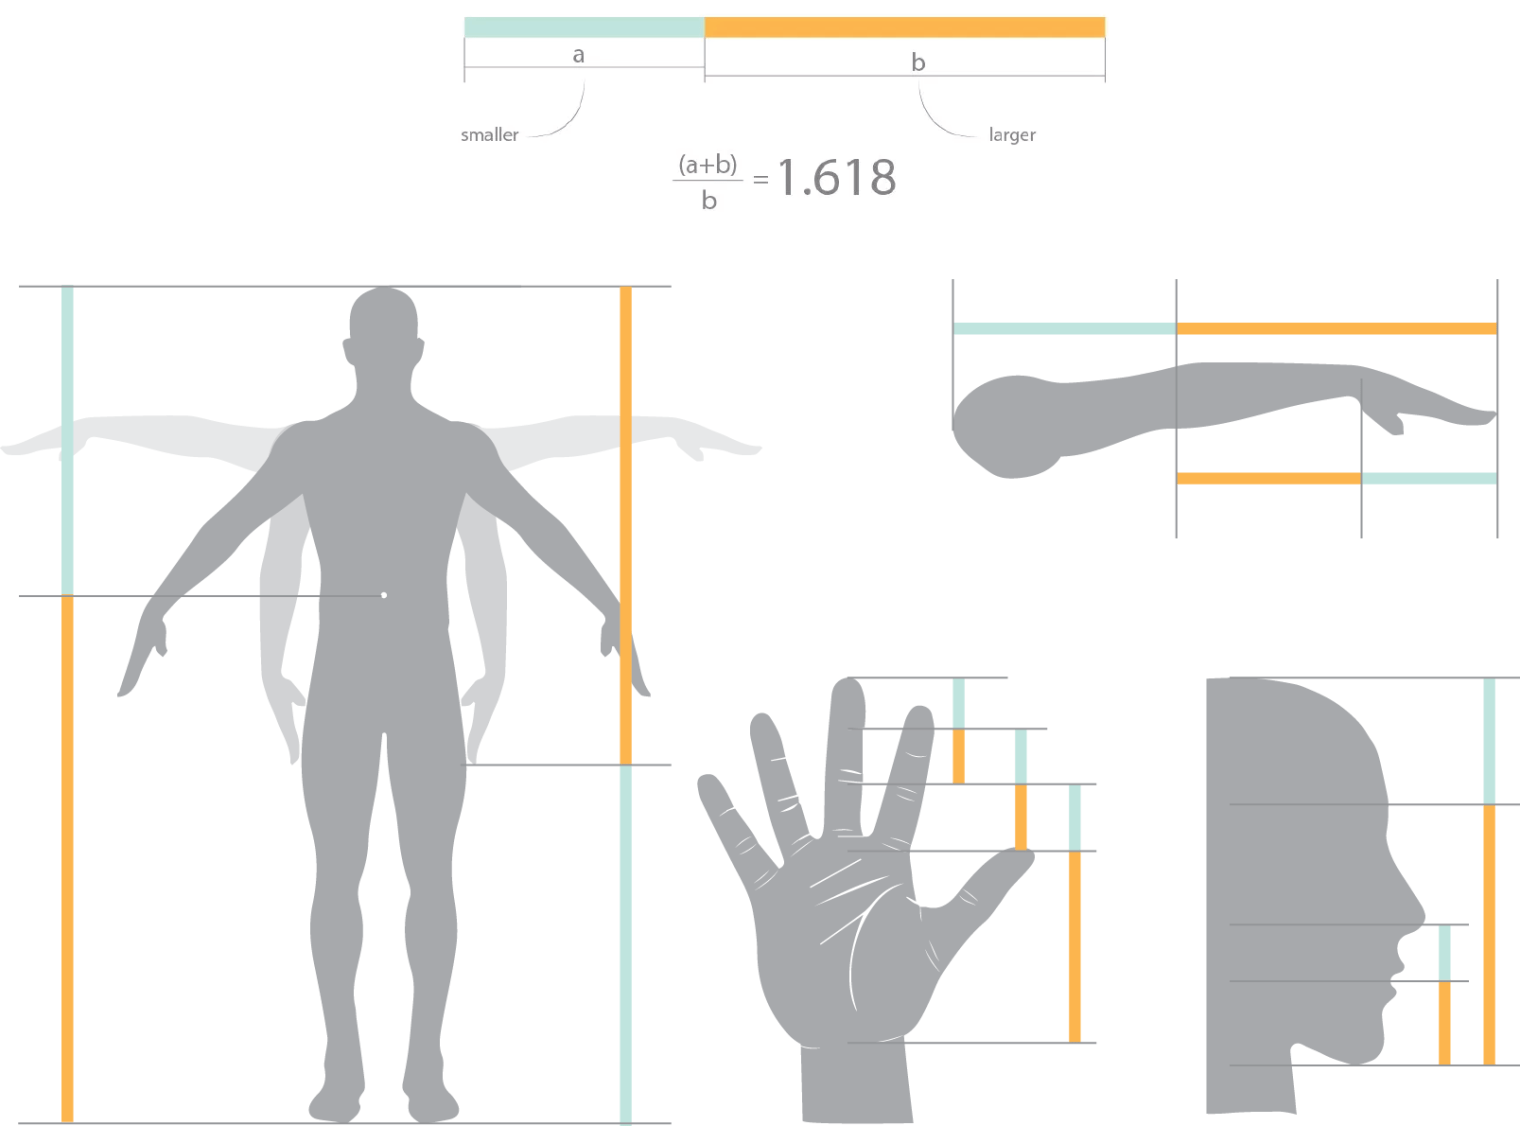 Golden Ratio in body parts